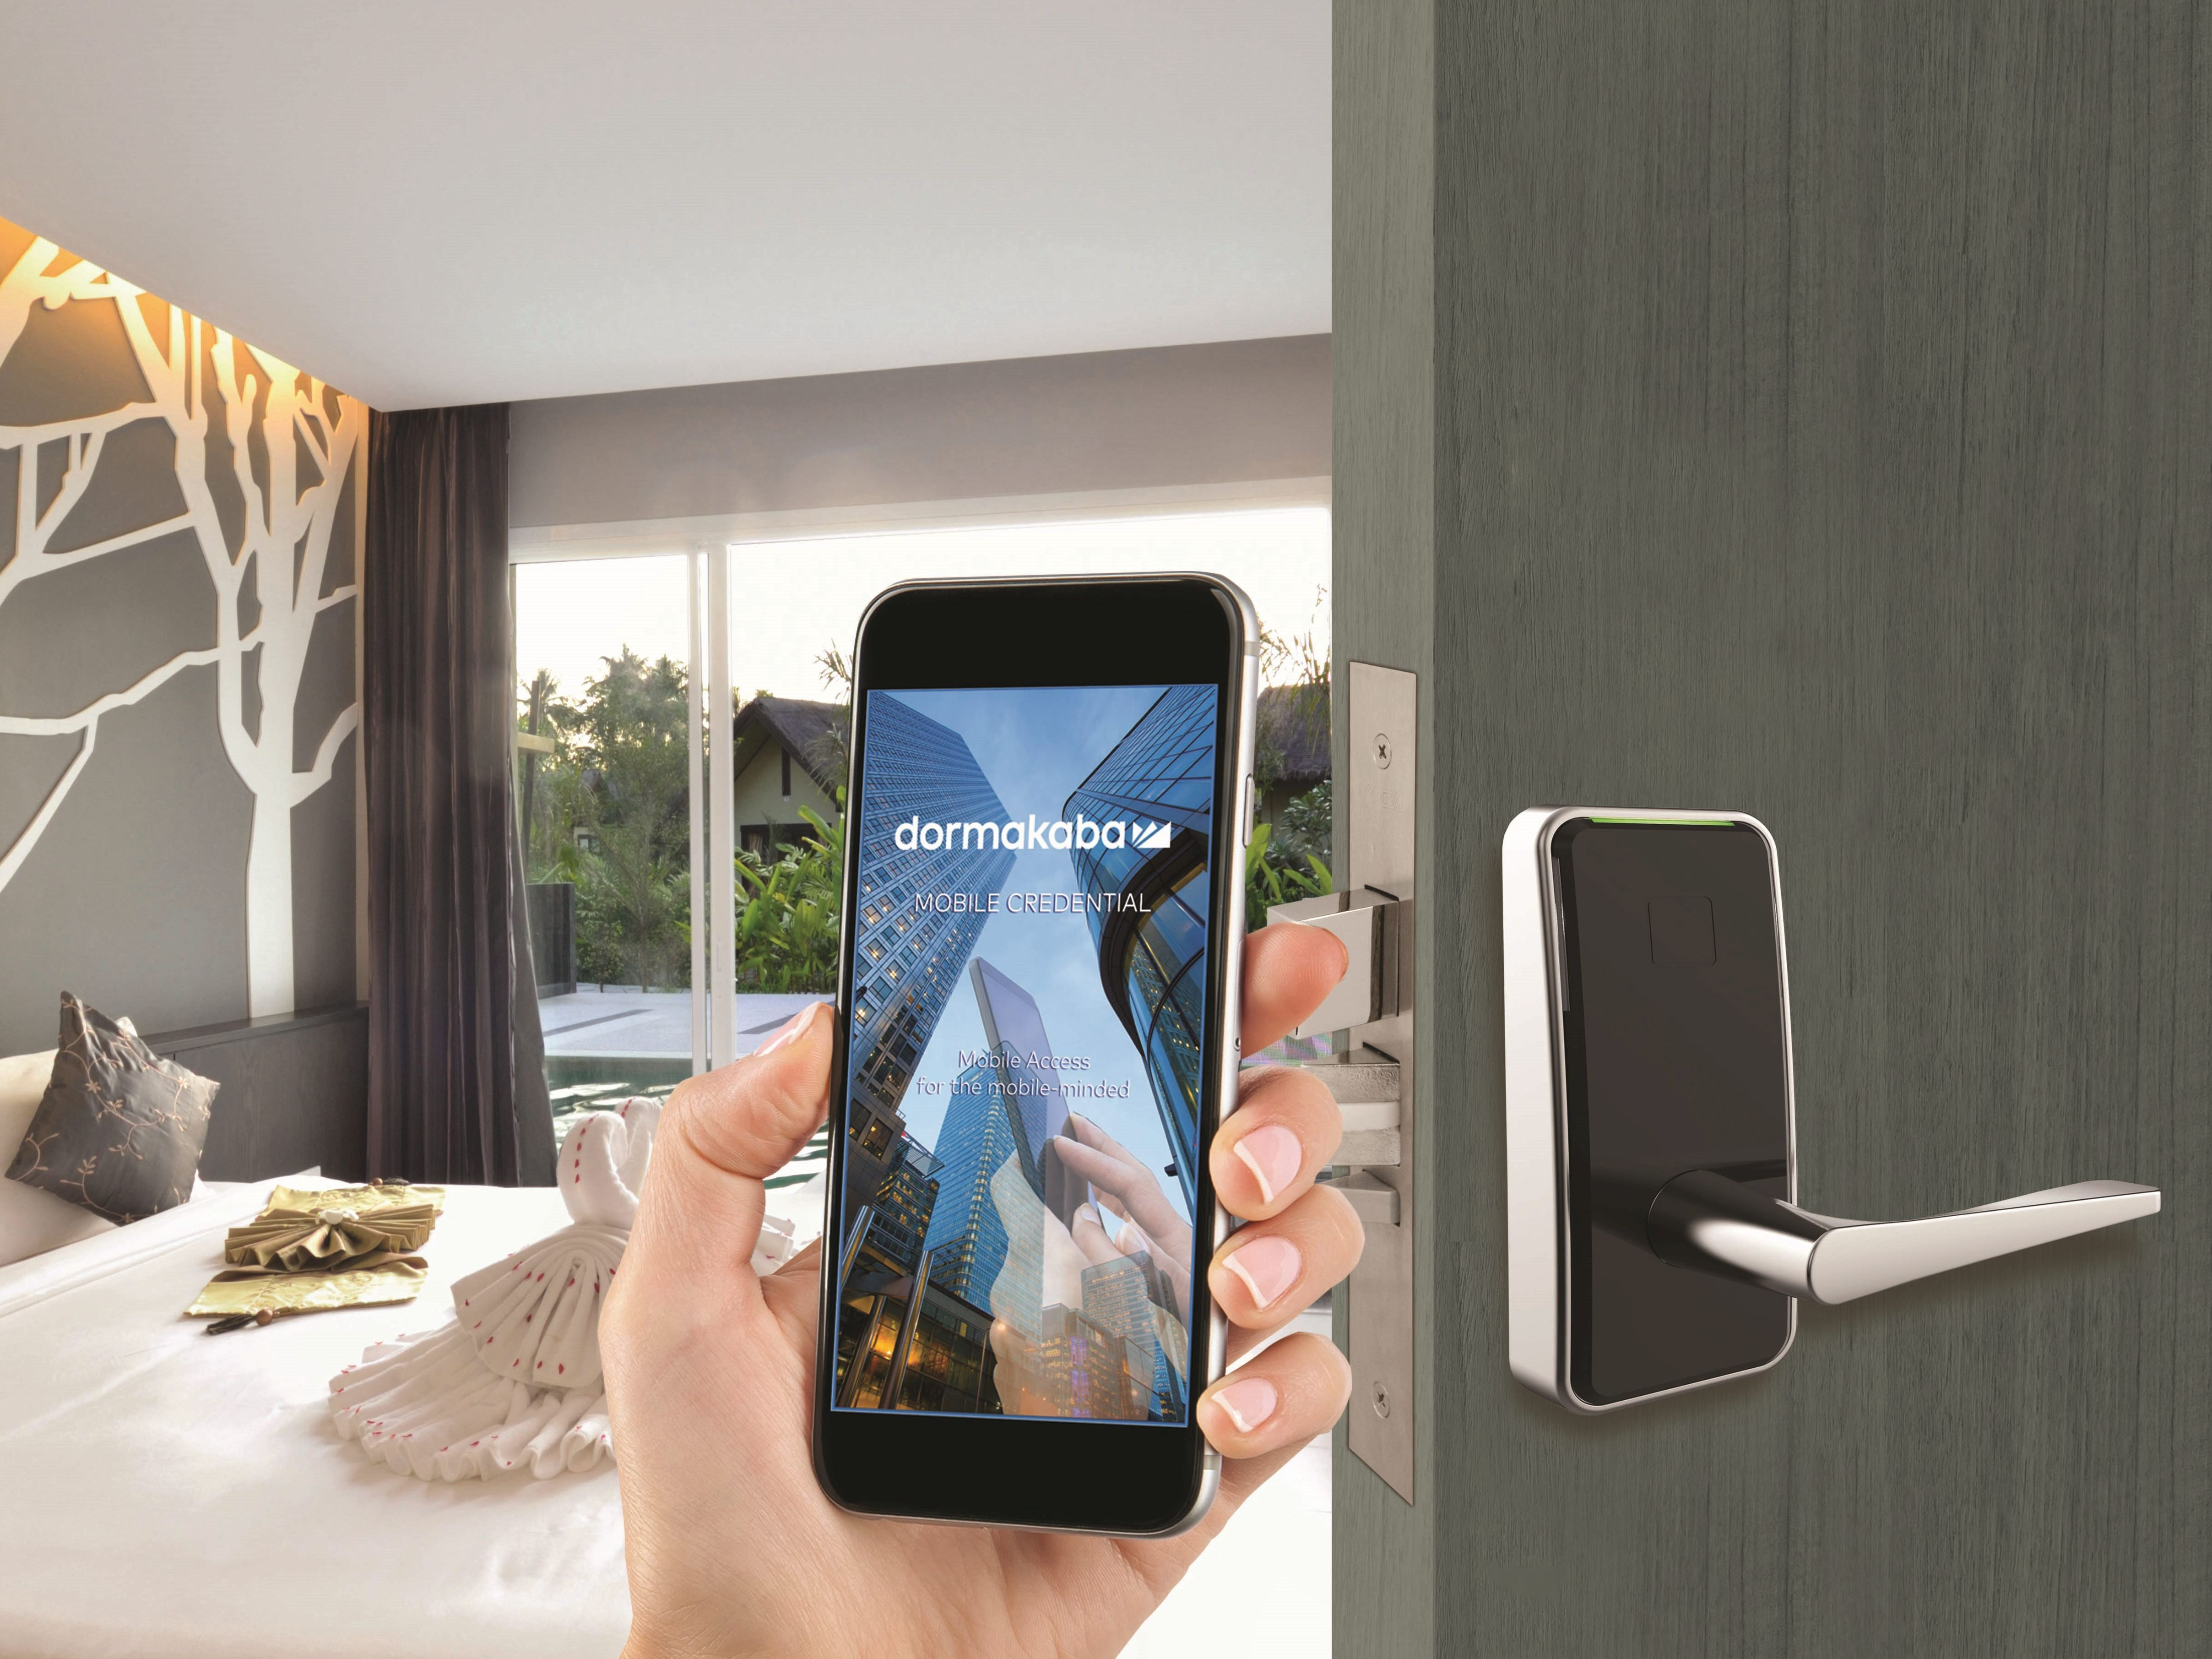 Mobile Technology: Why Mobile Key Is Taking Over In Hotels